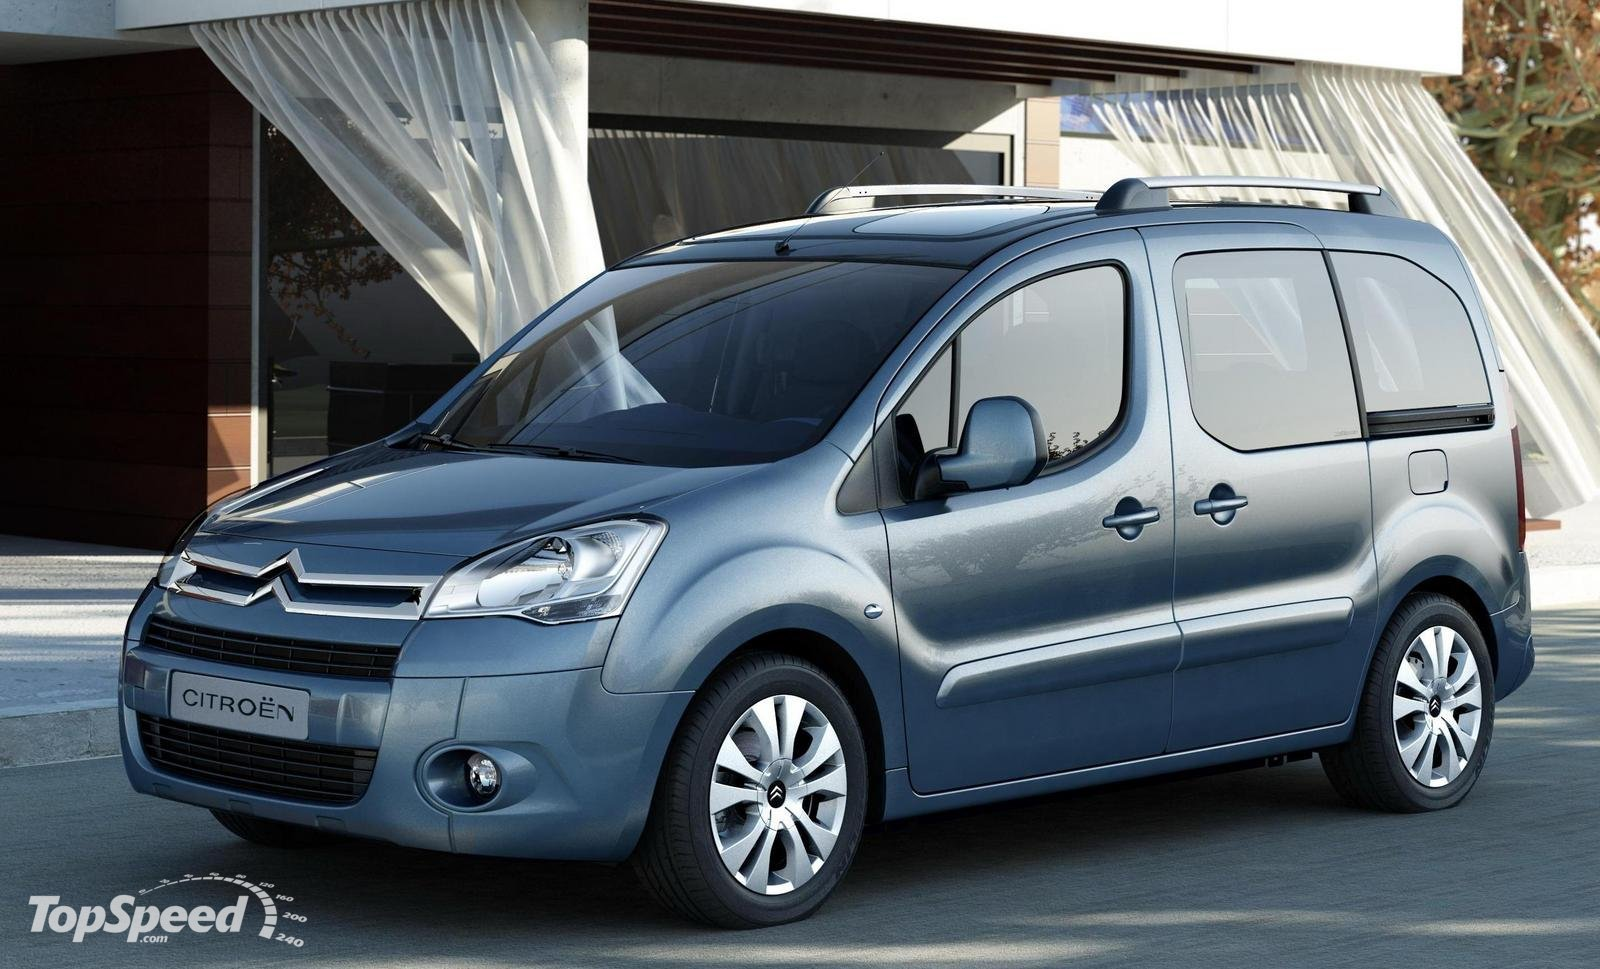 2010 Citroen Berlingo #7